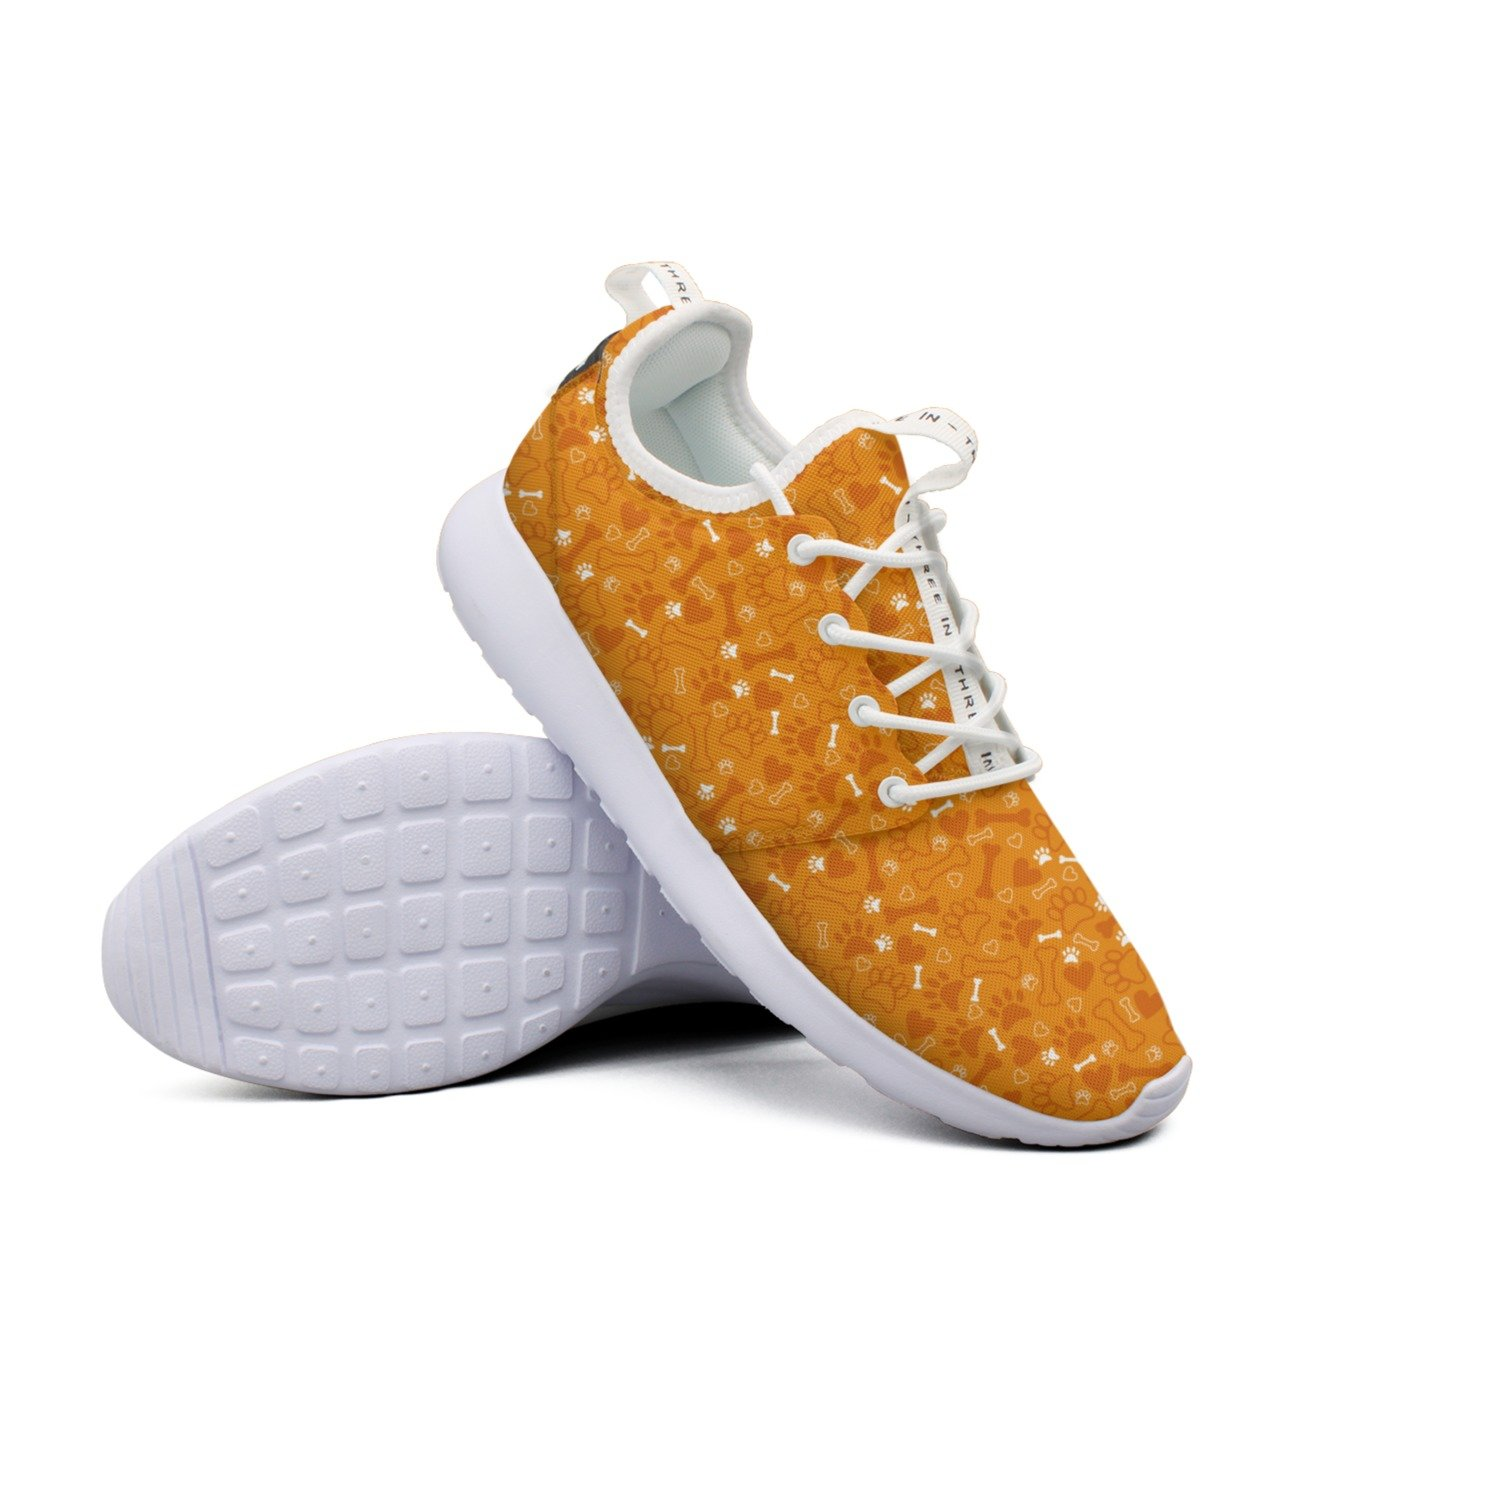 FUFGT Dog Paw Print Women Net Casual Running Shoes Unique Gift